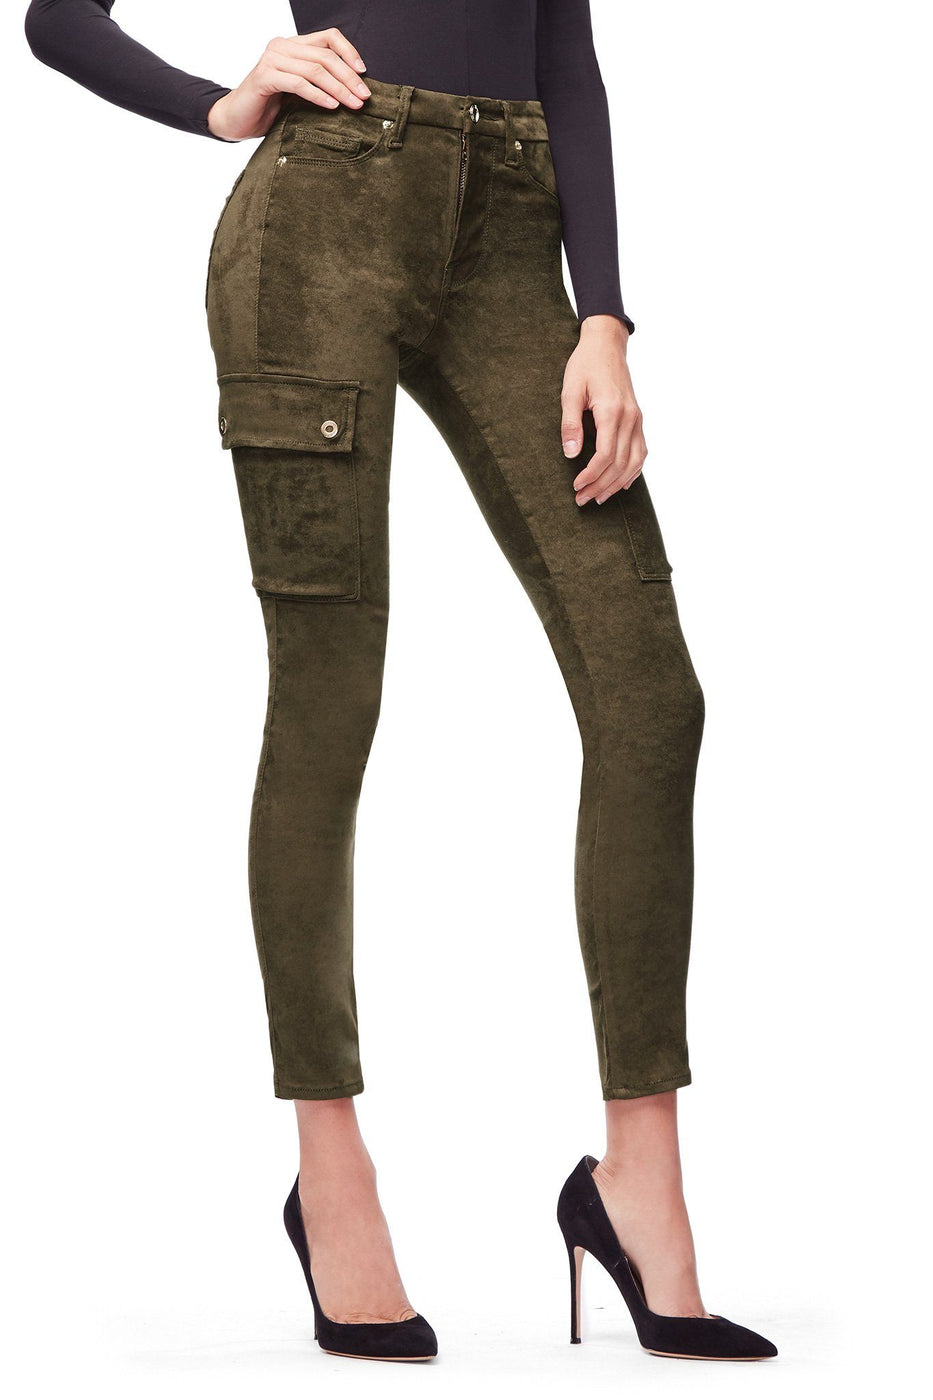 Good American High Waisted Crop Suede-Like Olive002 Jeans